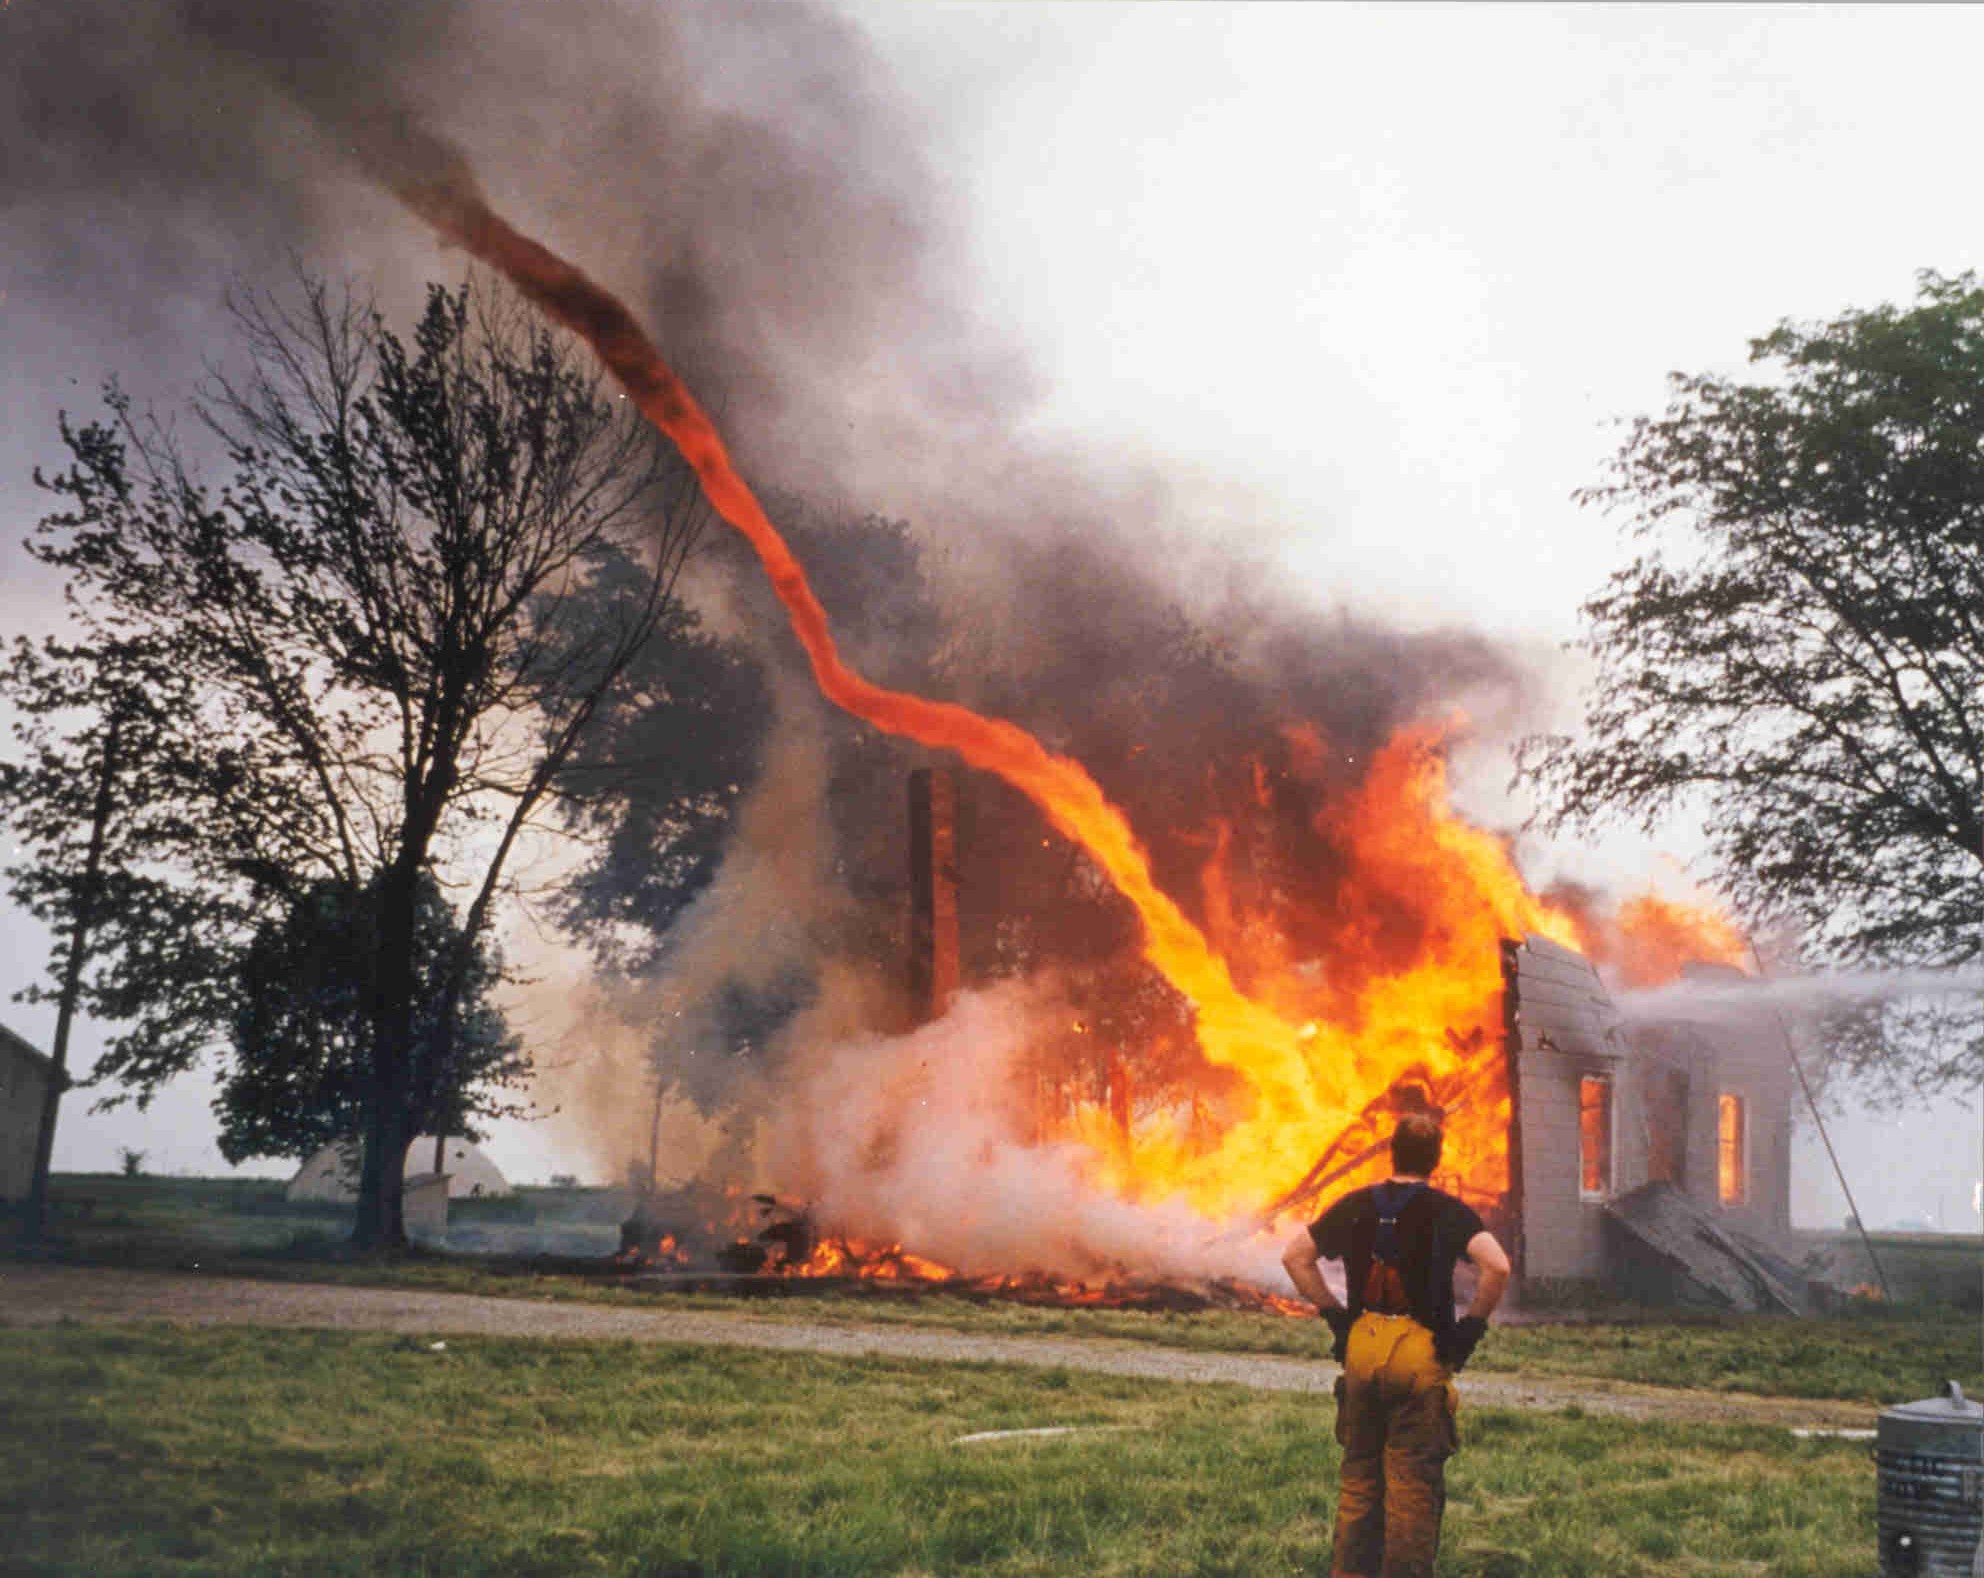 6 - Fire from a burning bulding being sucked into a tornado